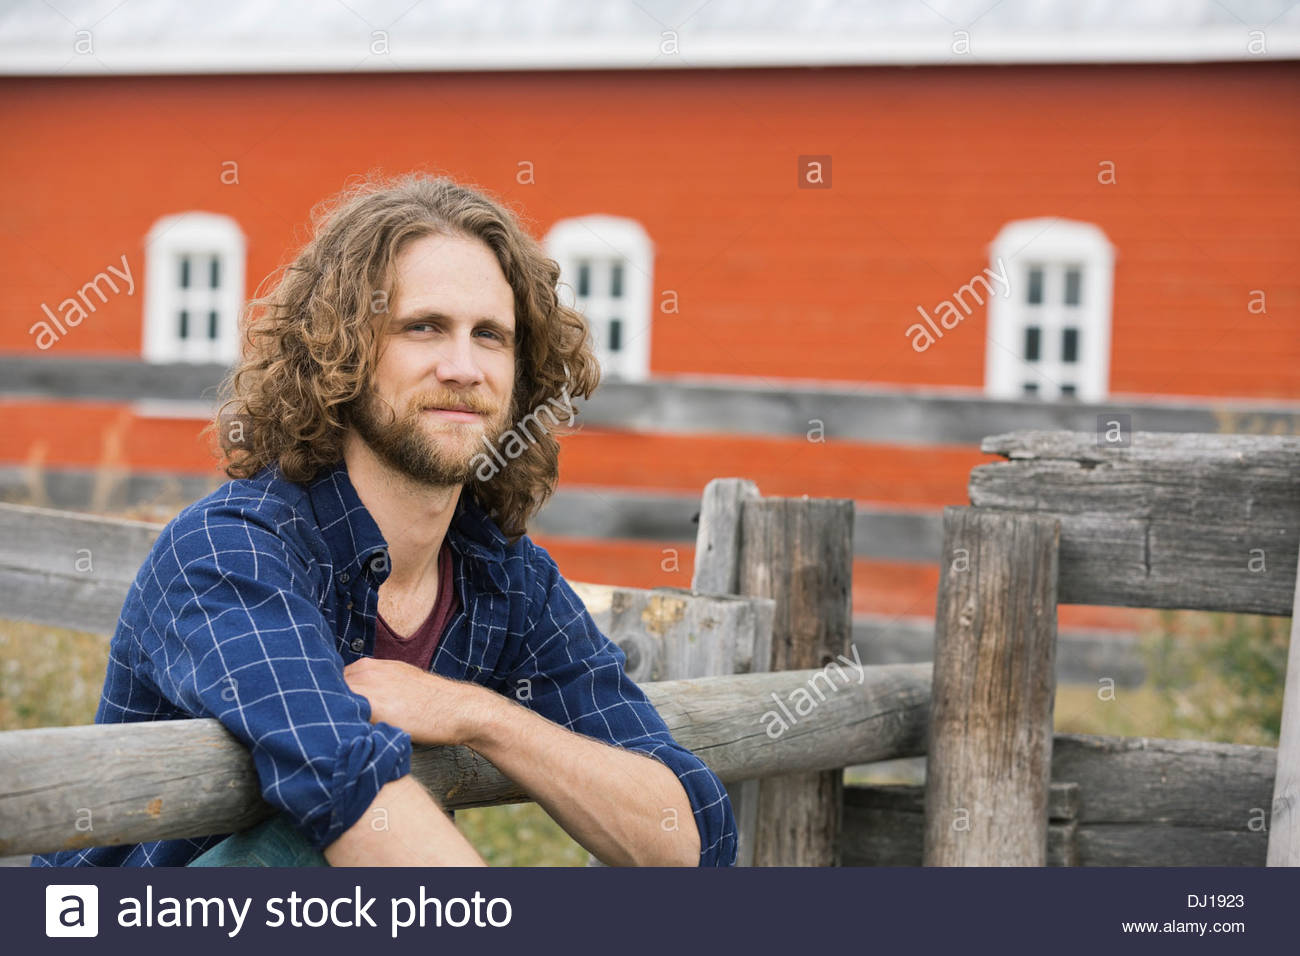 Portrait of happy man leaning against fence - Stock Image